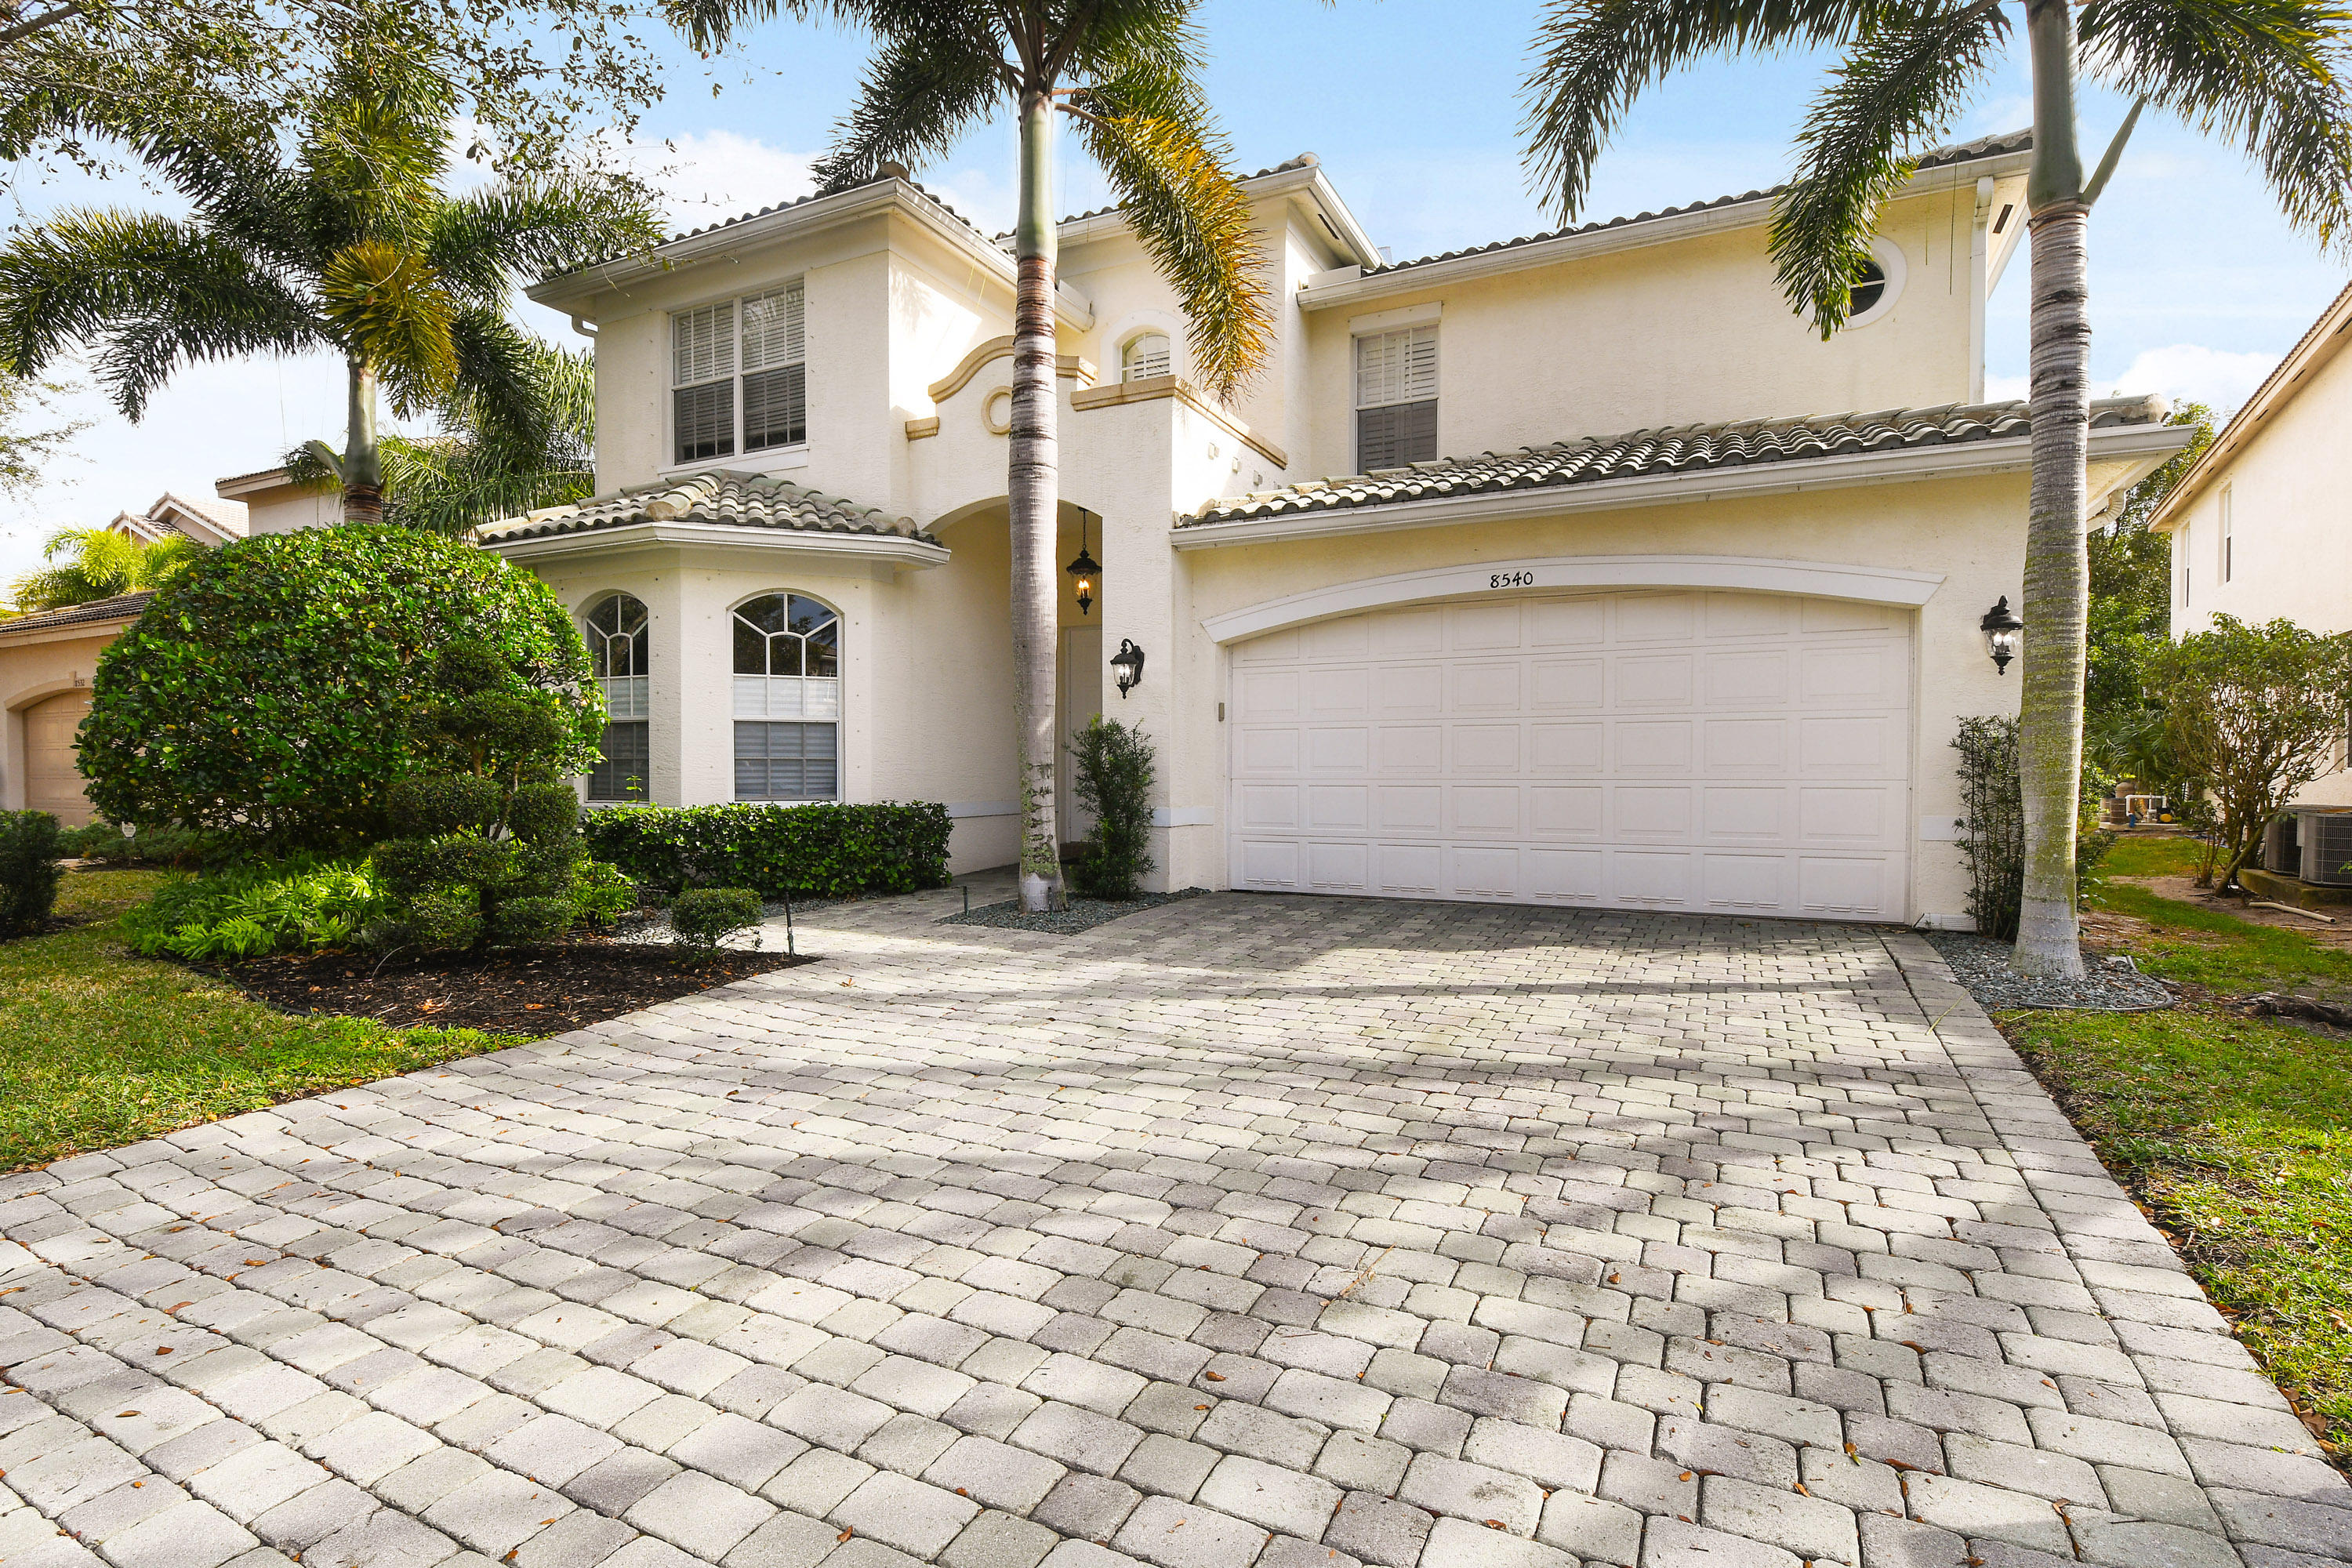 8540 Breezy Oak Way Boynton Beach, FL 33473